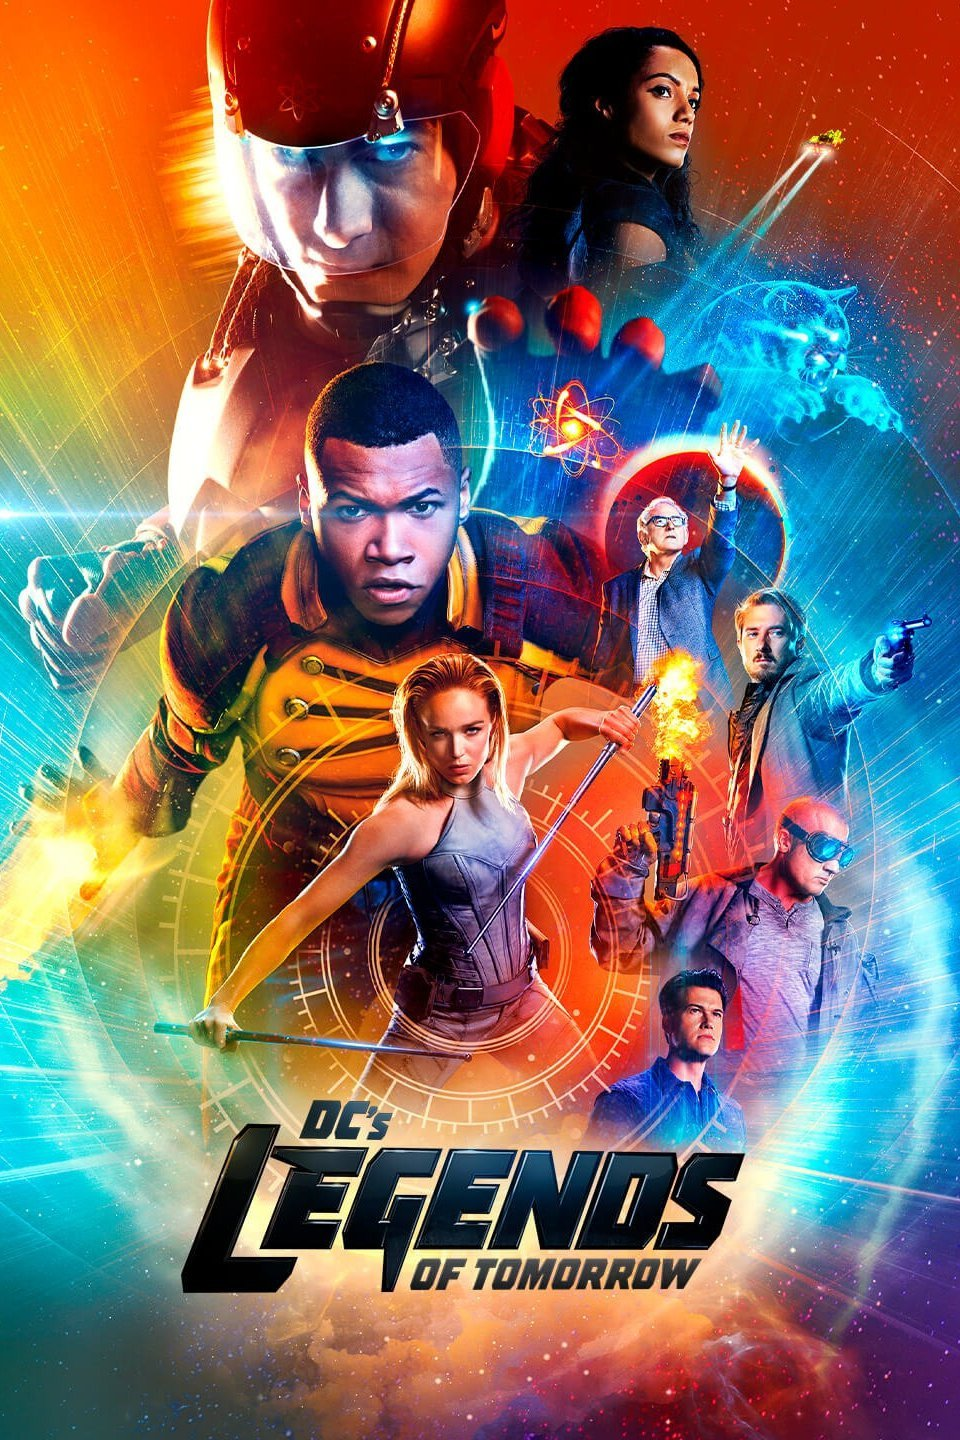 Legends of Tomorrow Season 3 Episode 1 Download HDTV